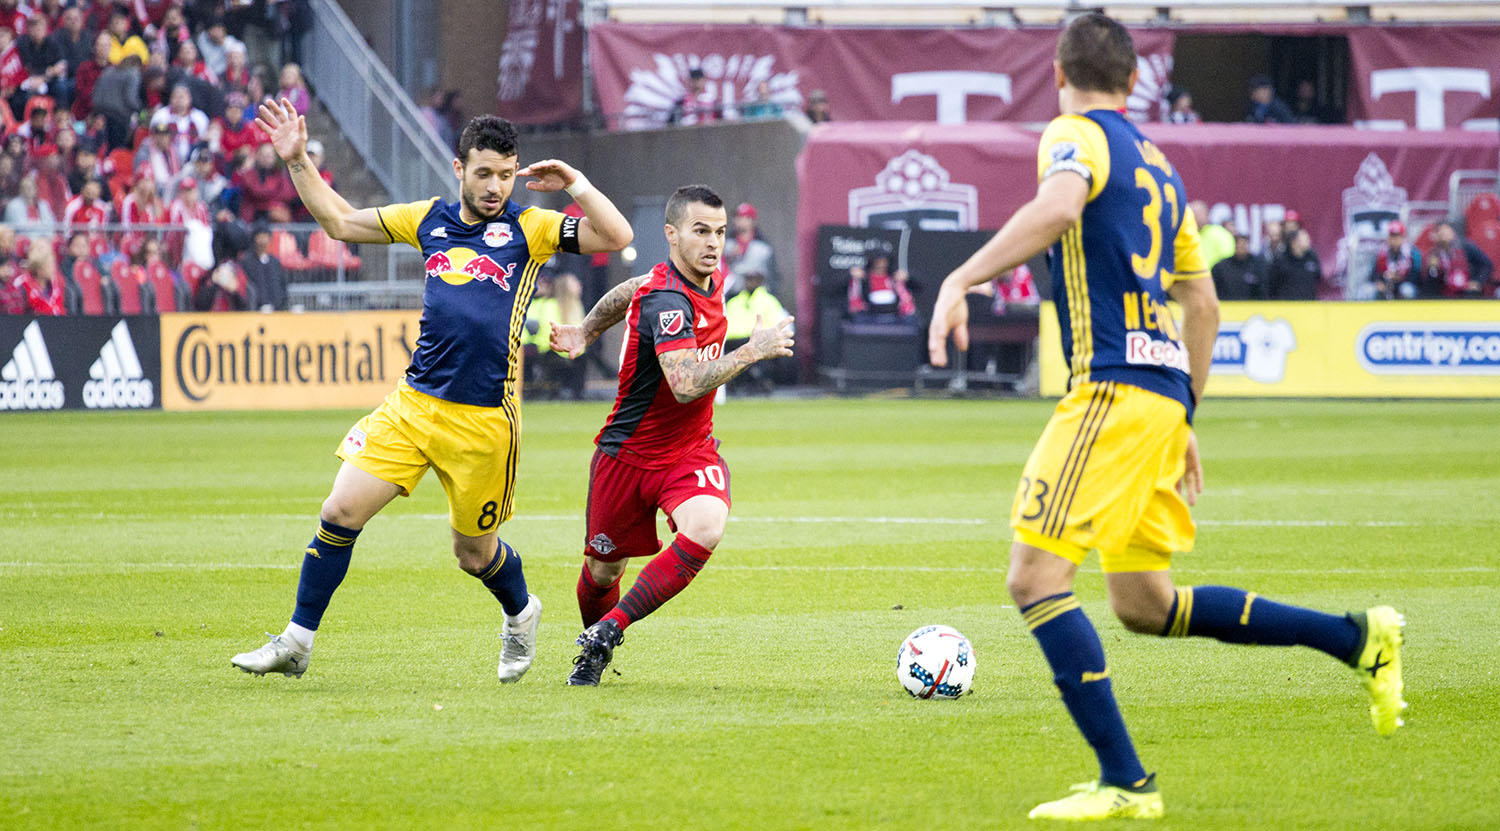 Sebastian Giovinco tries to get the ball past two NYRB defenders during a 2017 MLS playoff game. Image by Dennis Marciniak of denMAR Media.